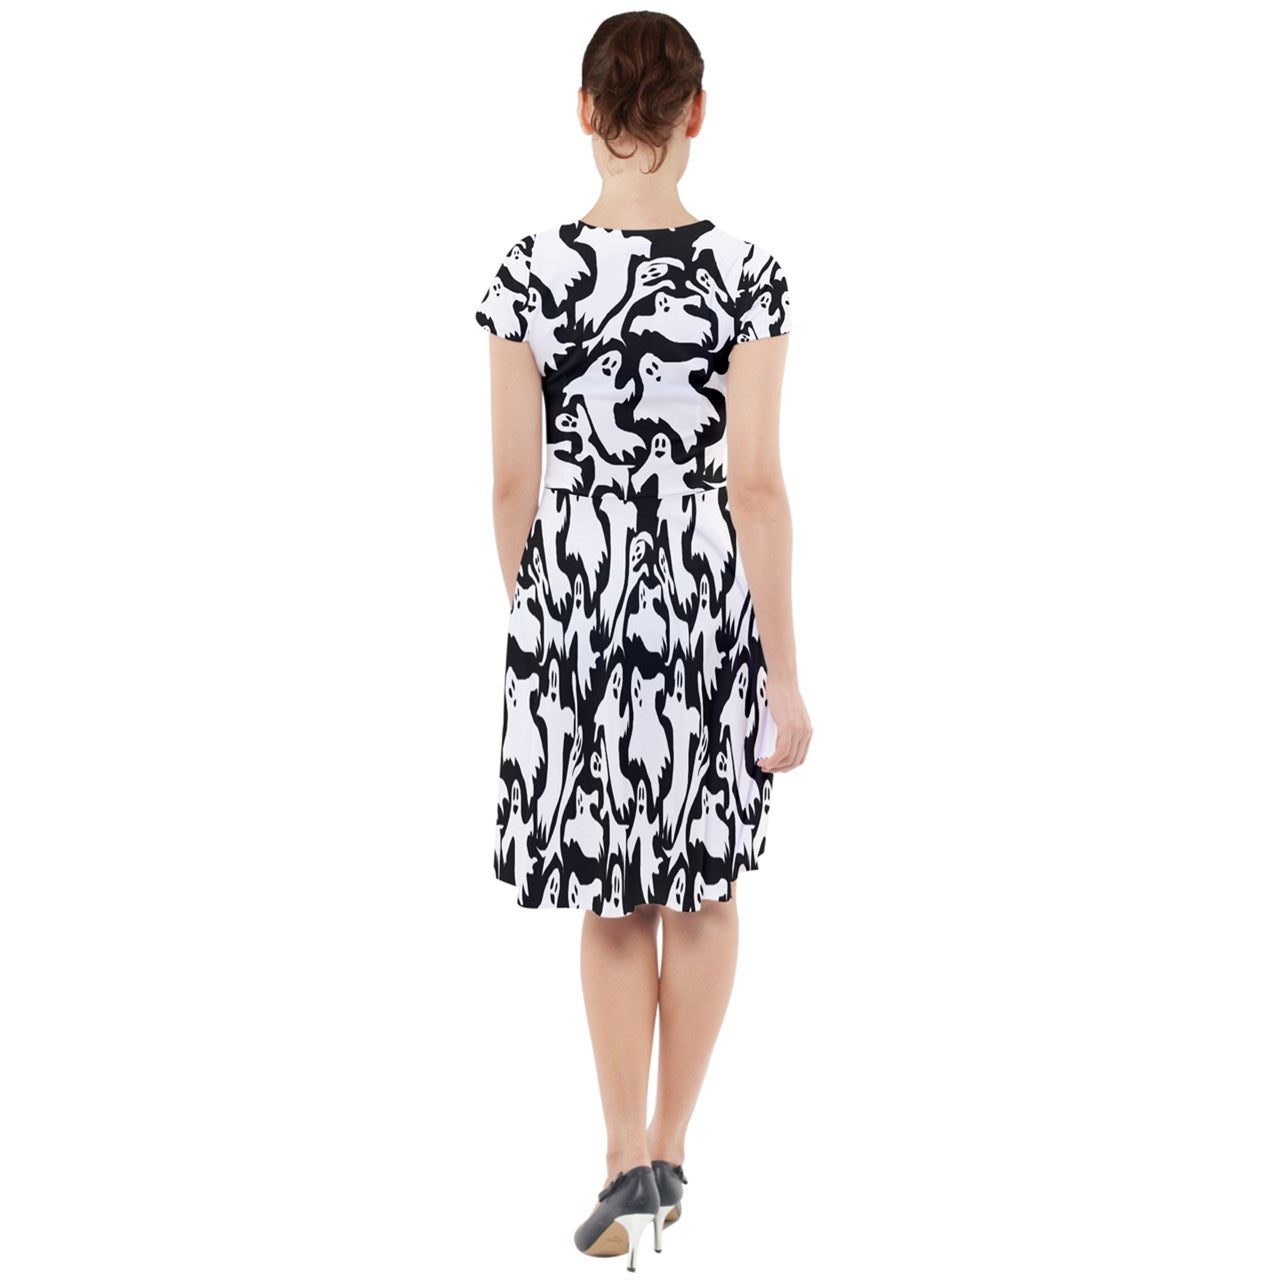 Ghosts Cap Sleeve Midi Dress